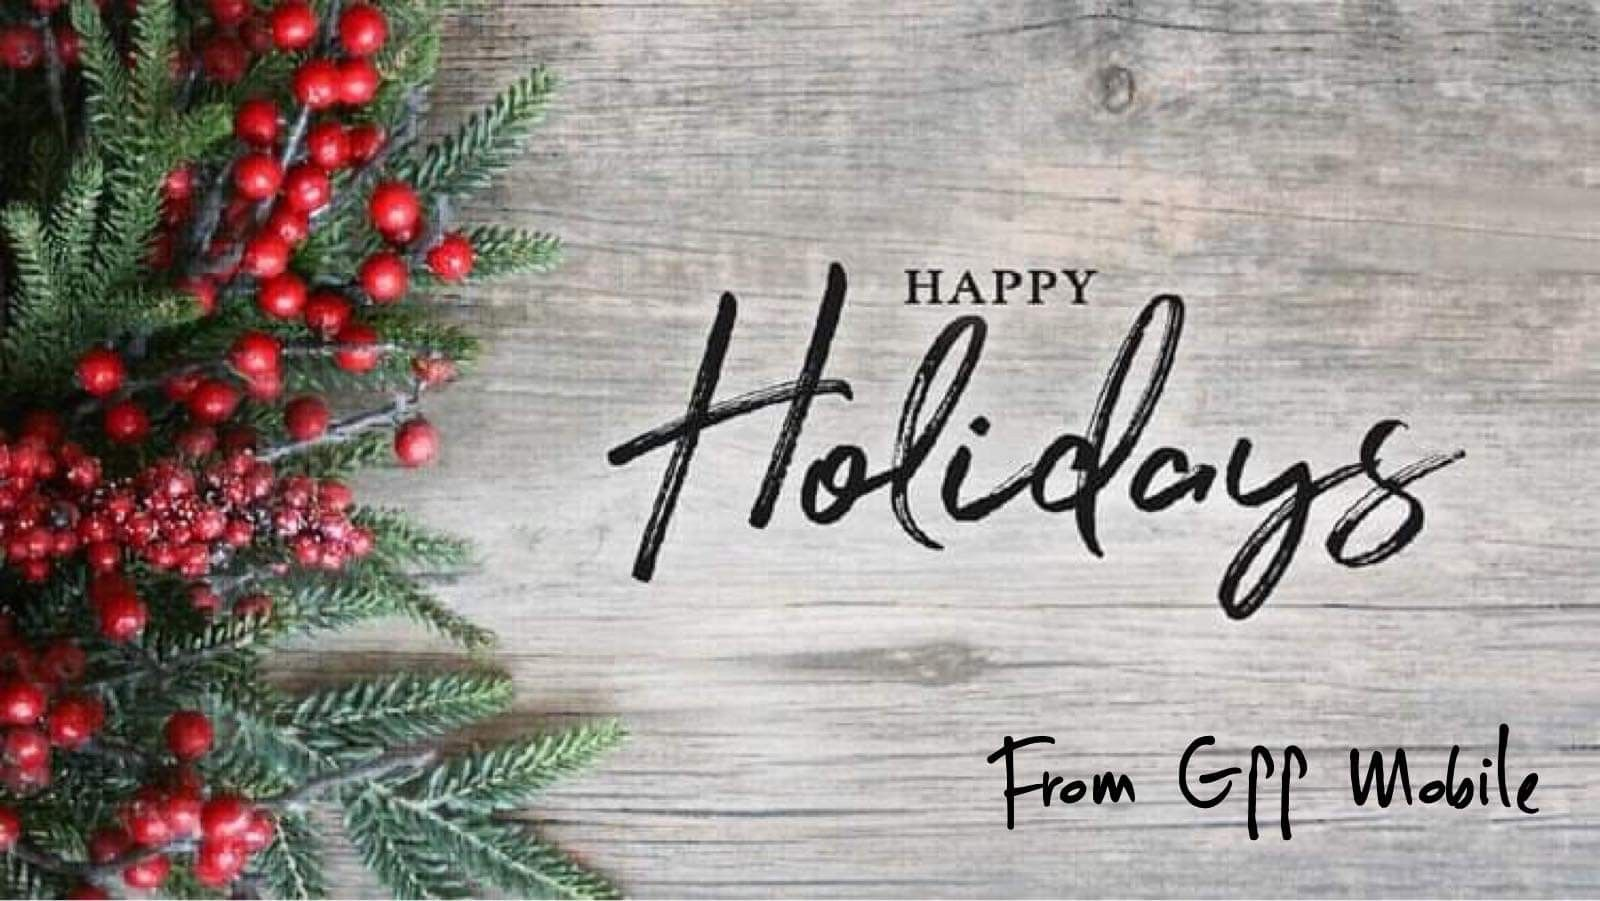 Happy Holidays From Your Family At Gpp Mobile We Will Be Closed Tomorrow 12 24 And Christmas 12 Merry Christmas Everyone Party Rental Supplies Happy Holidays